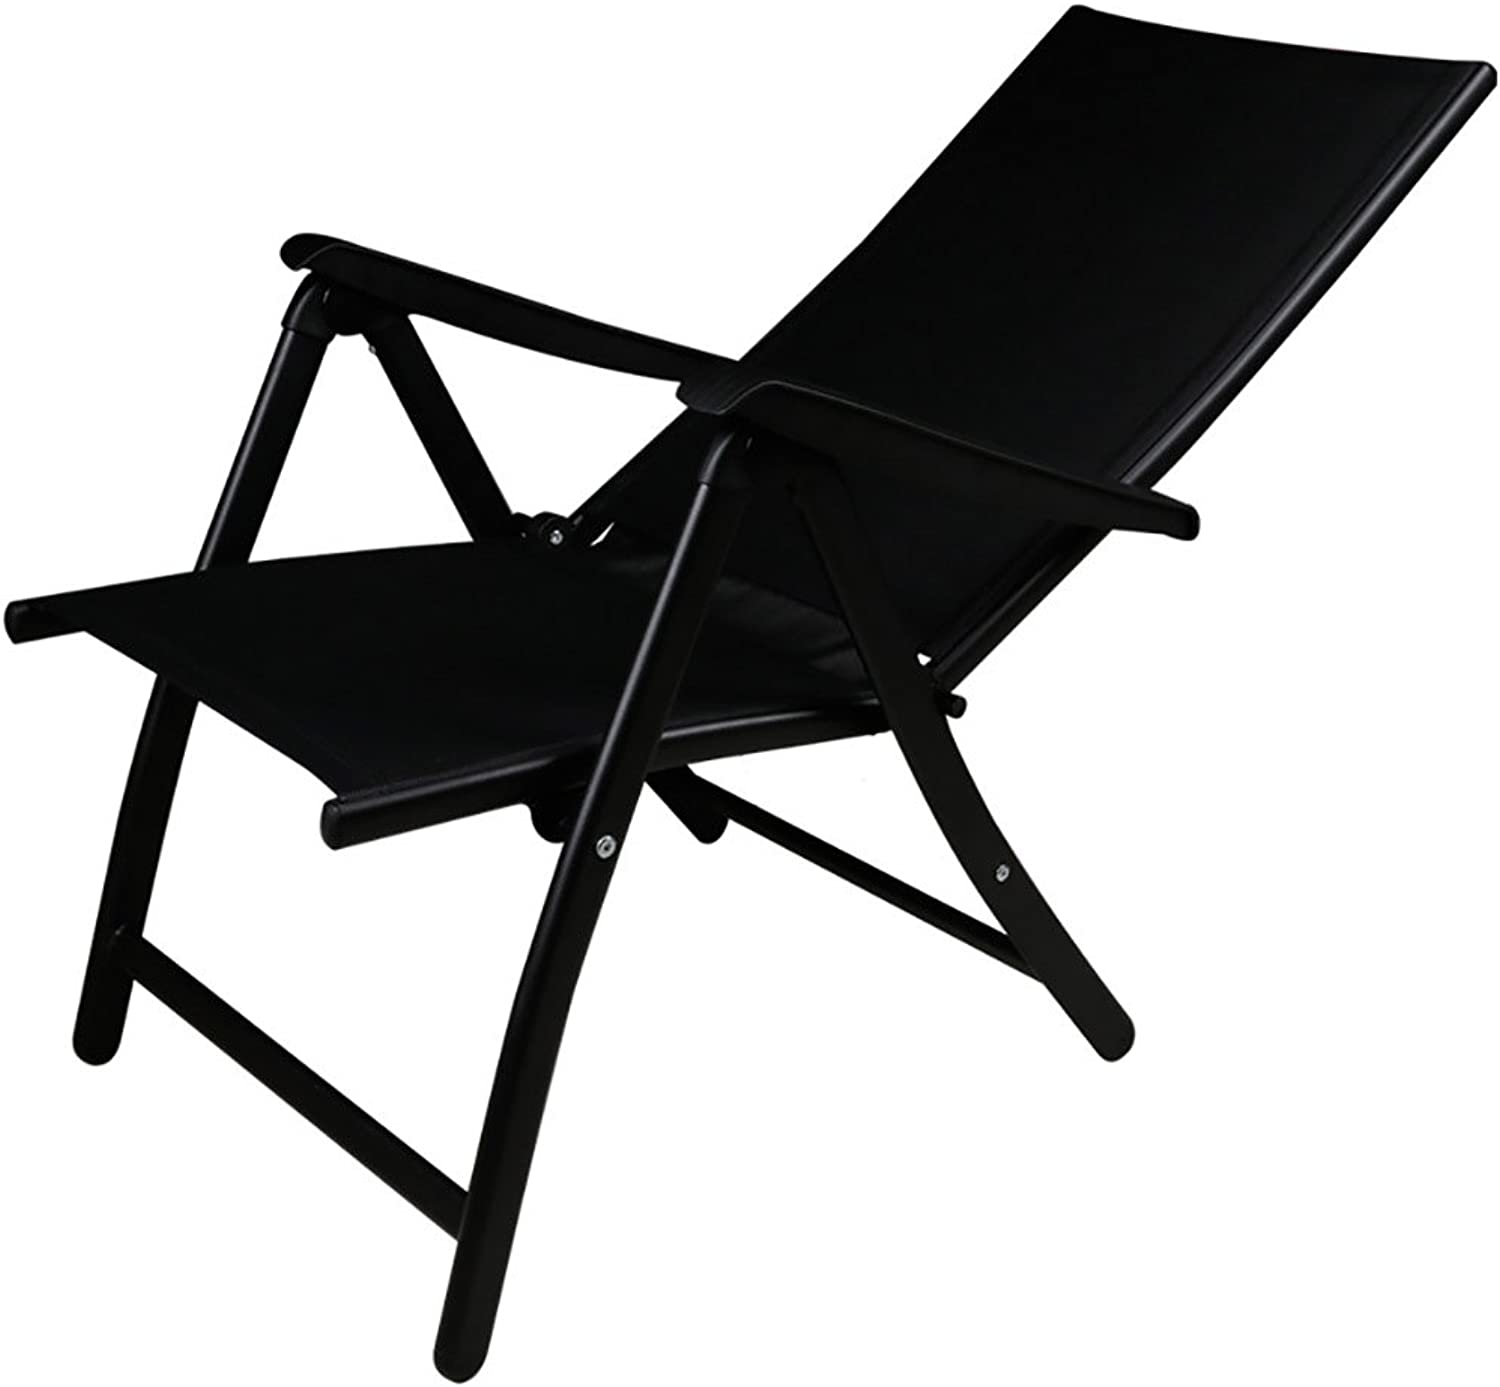 Chair Folding Chairs Folding Steel Canvas Chairs Beach Chairs Leisure Chairs Office Chairs